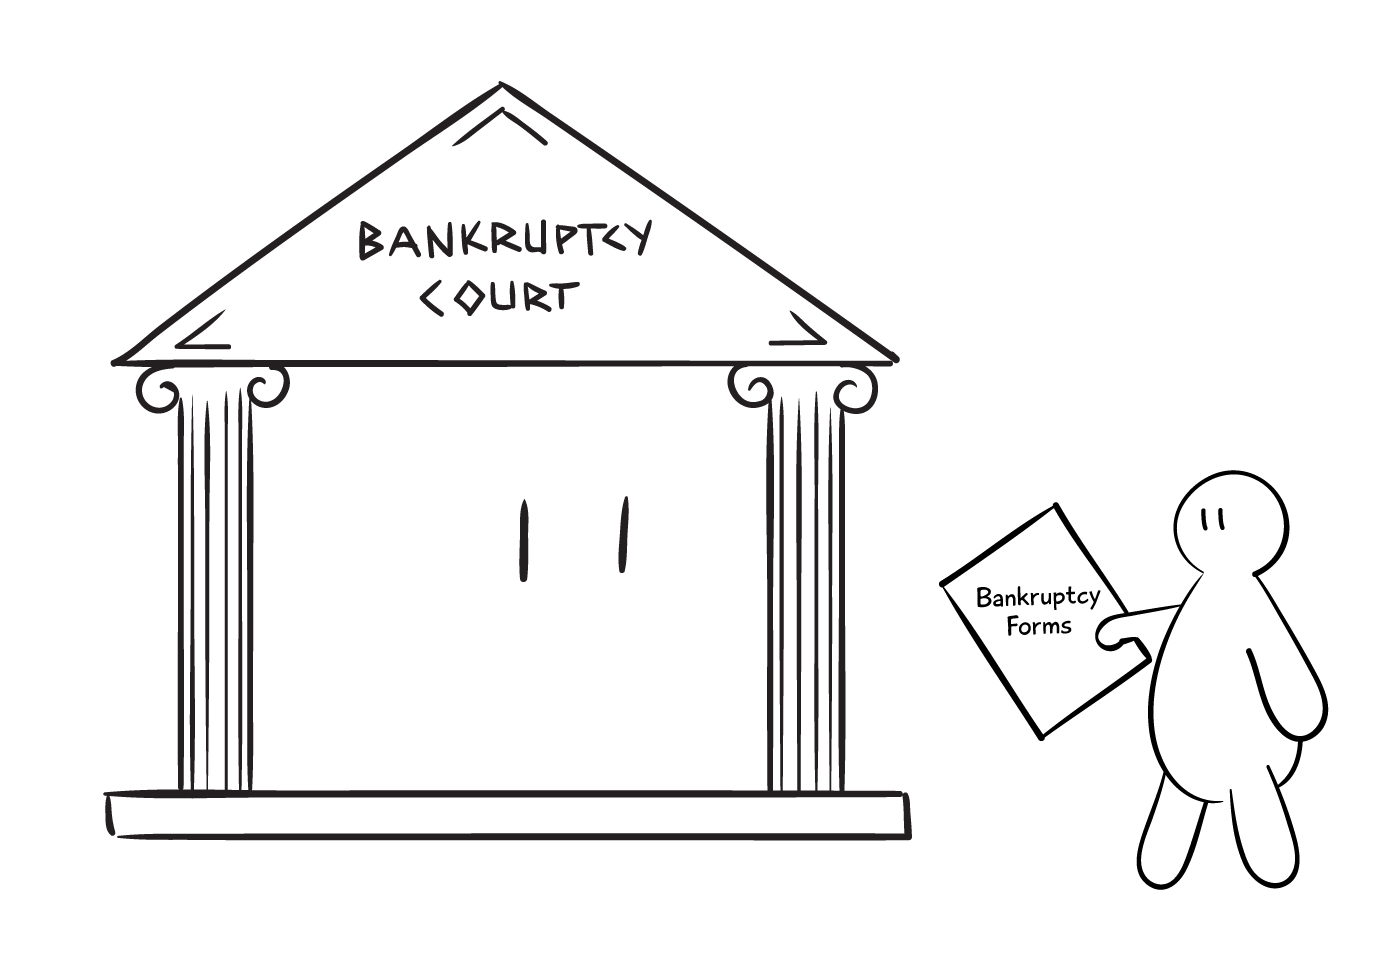 Person bringing forms to bankruptcy court